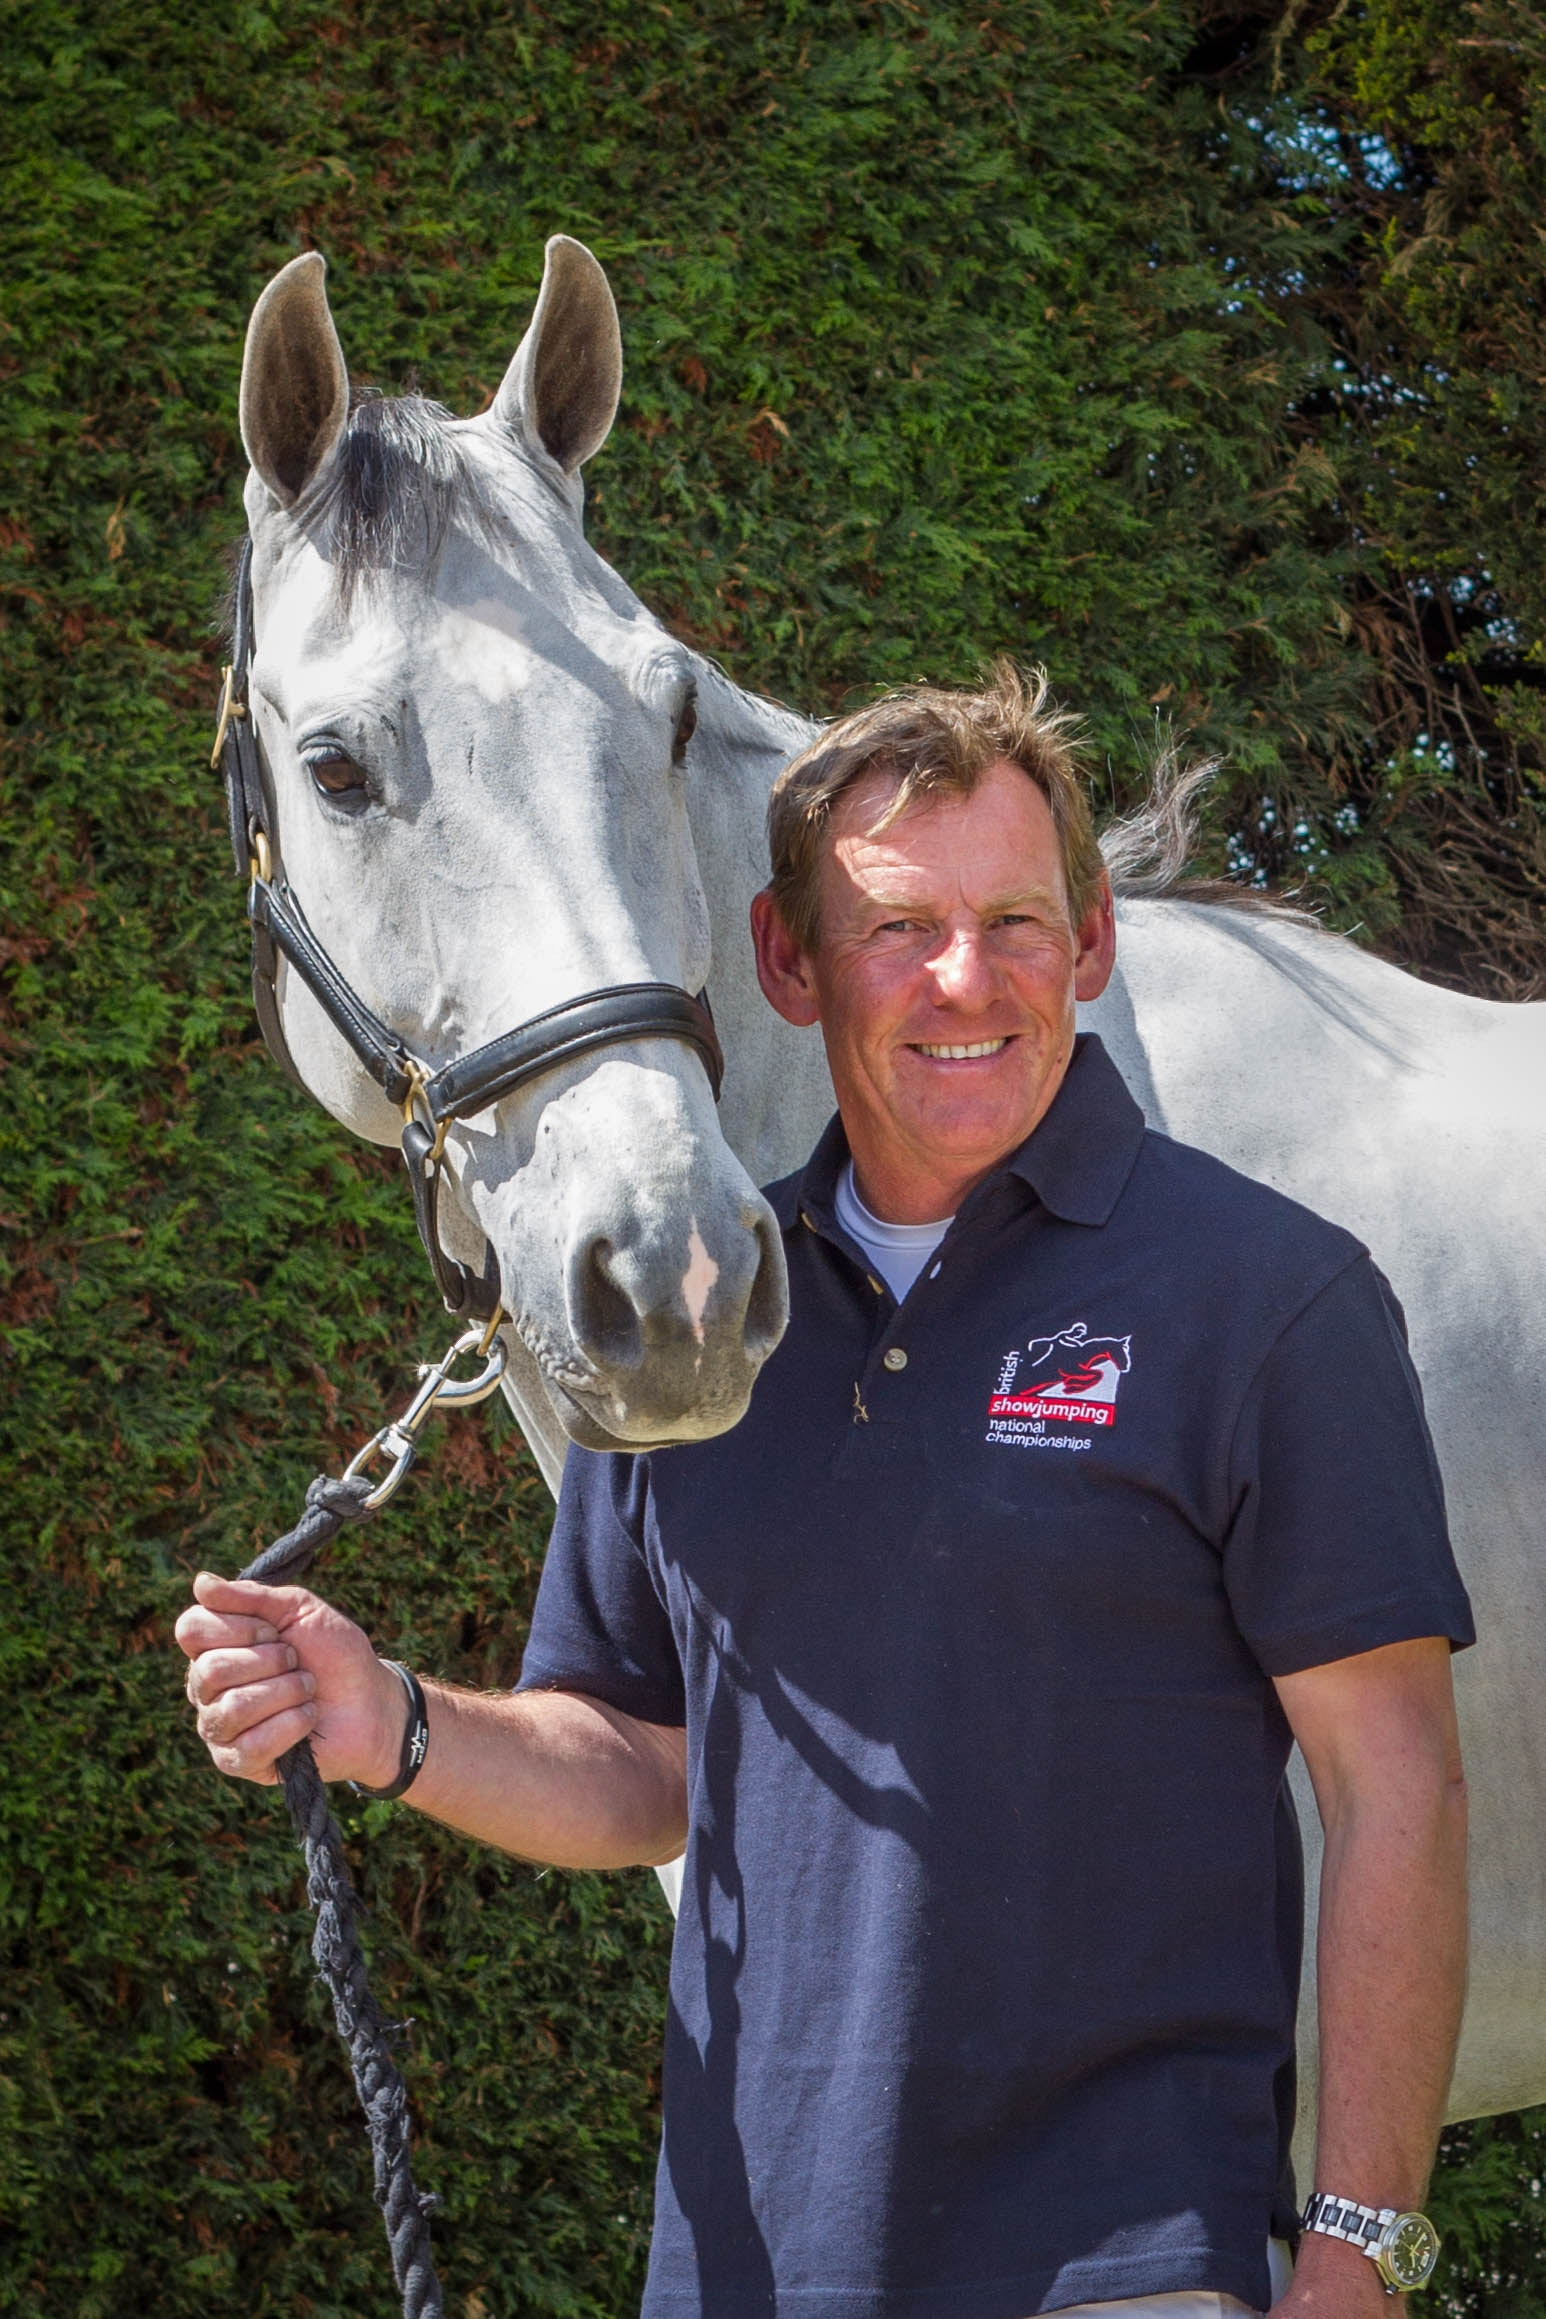 course walk for two at the with the British Showjumping National Championships and Stoneleigh Horse Show  sweepstakes